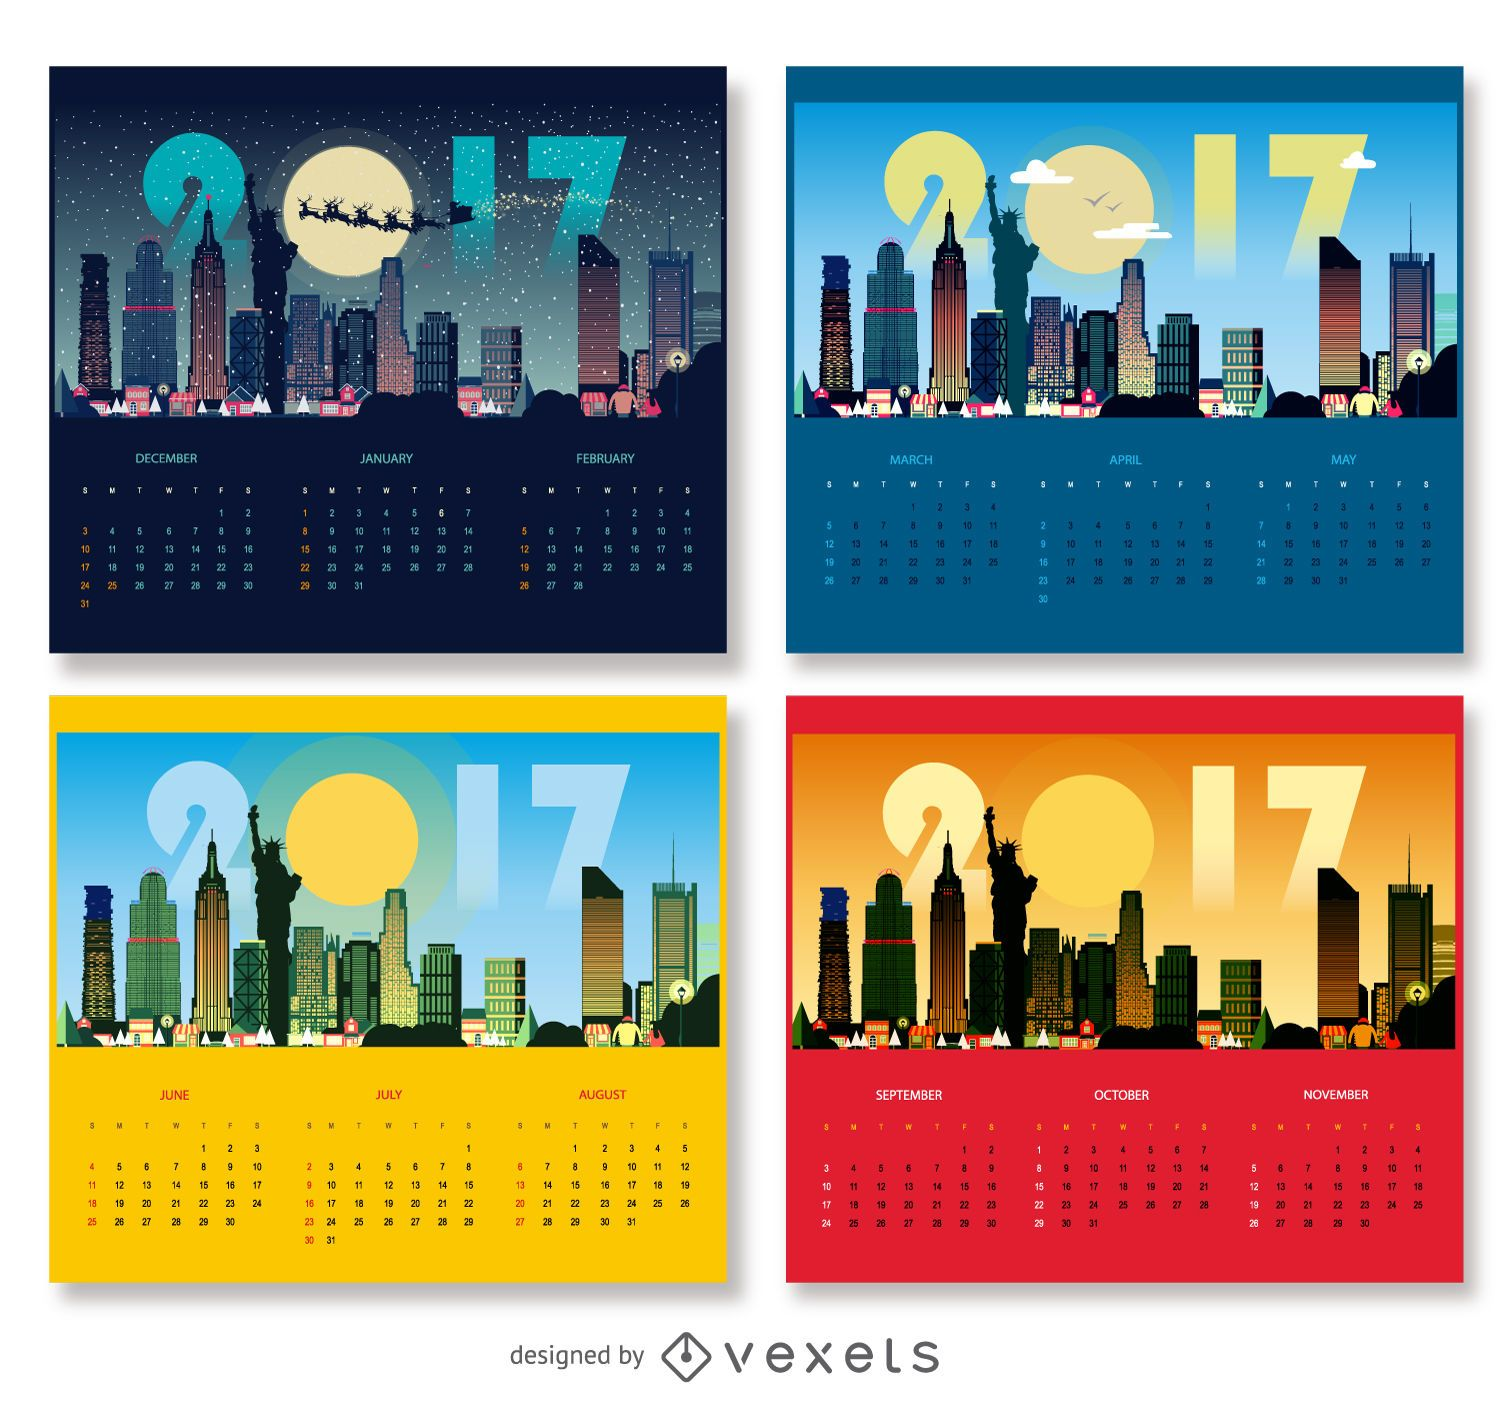 Calendar Design With Photos : Calendar design vector download